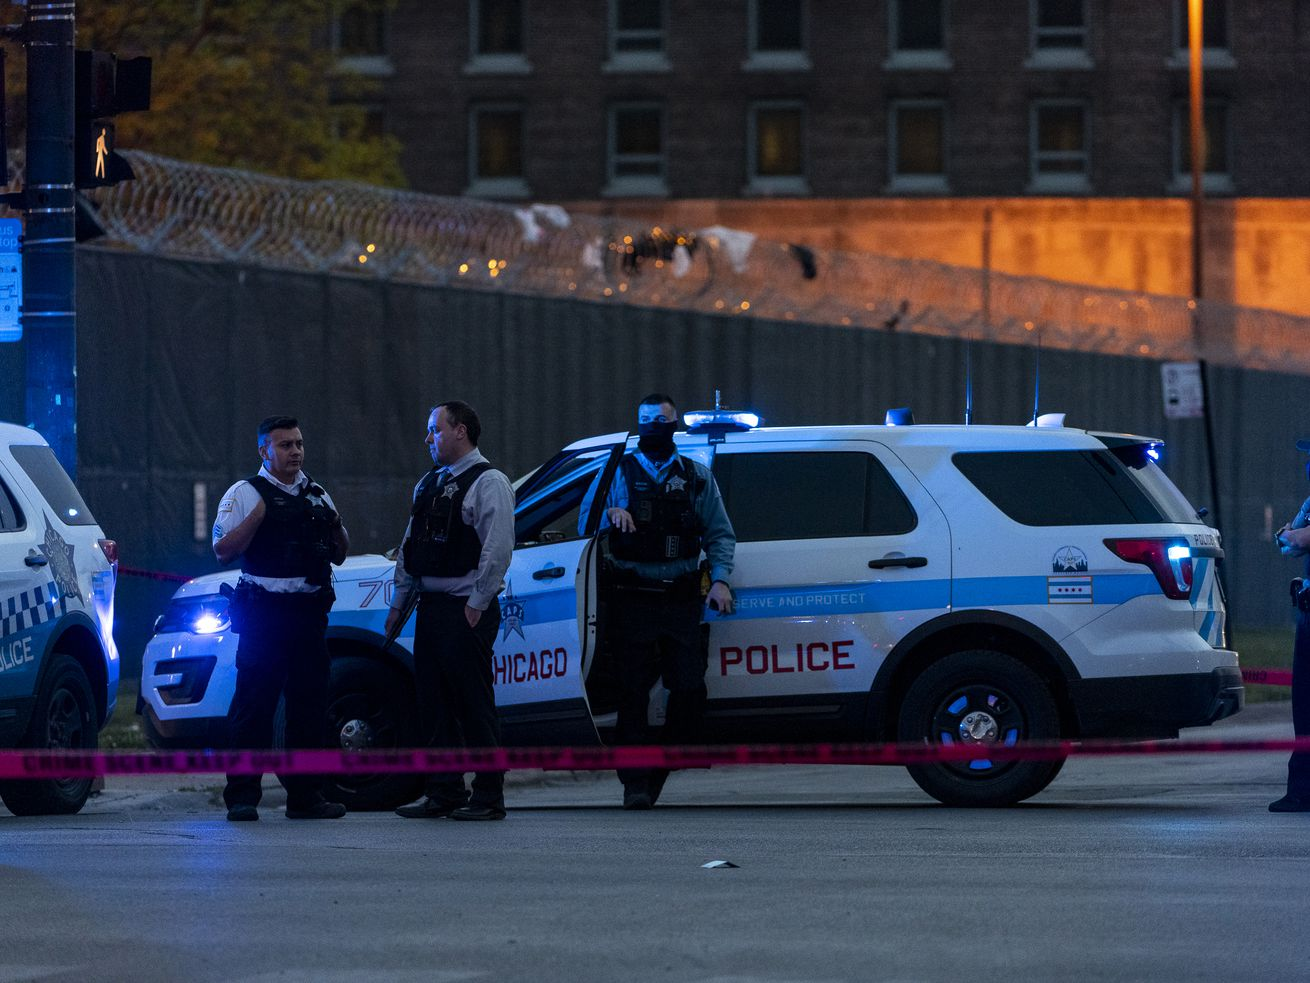 Chicago police work the scene where a 2-year-old girl was shot in the leg in the 2800 block of West 26th St. in the Little Village neighborhood, Friday, May 14, 2021.